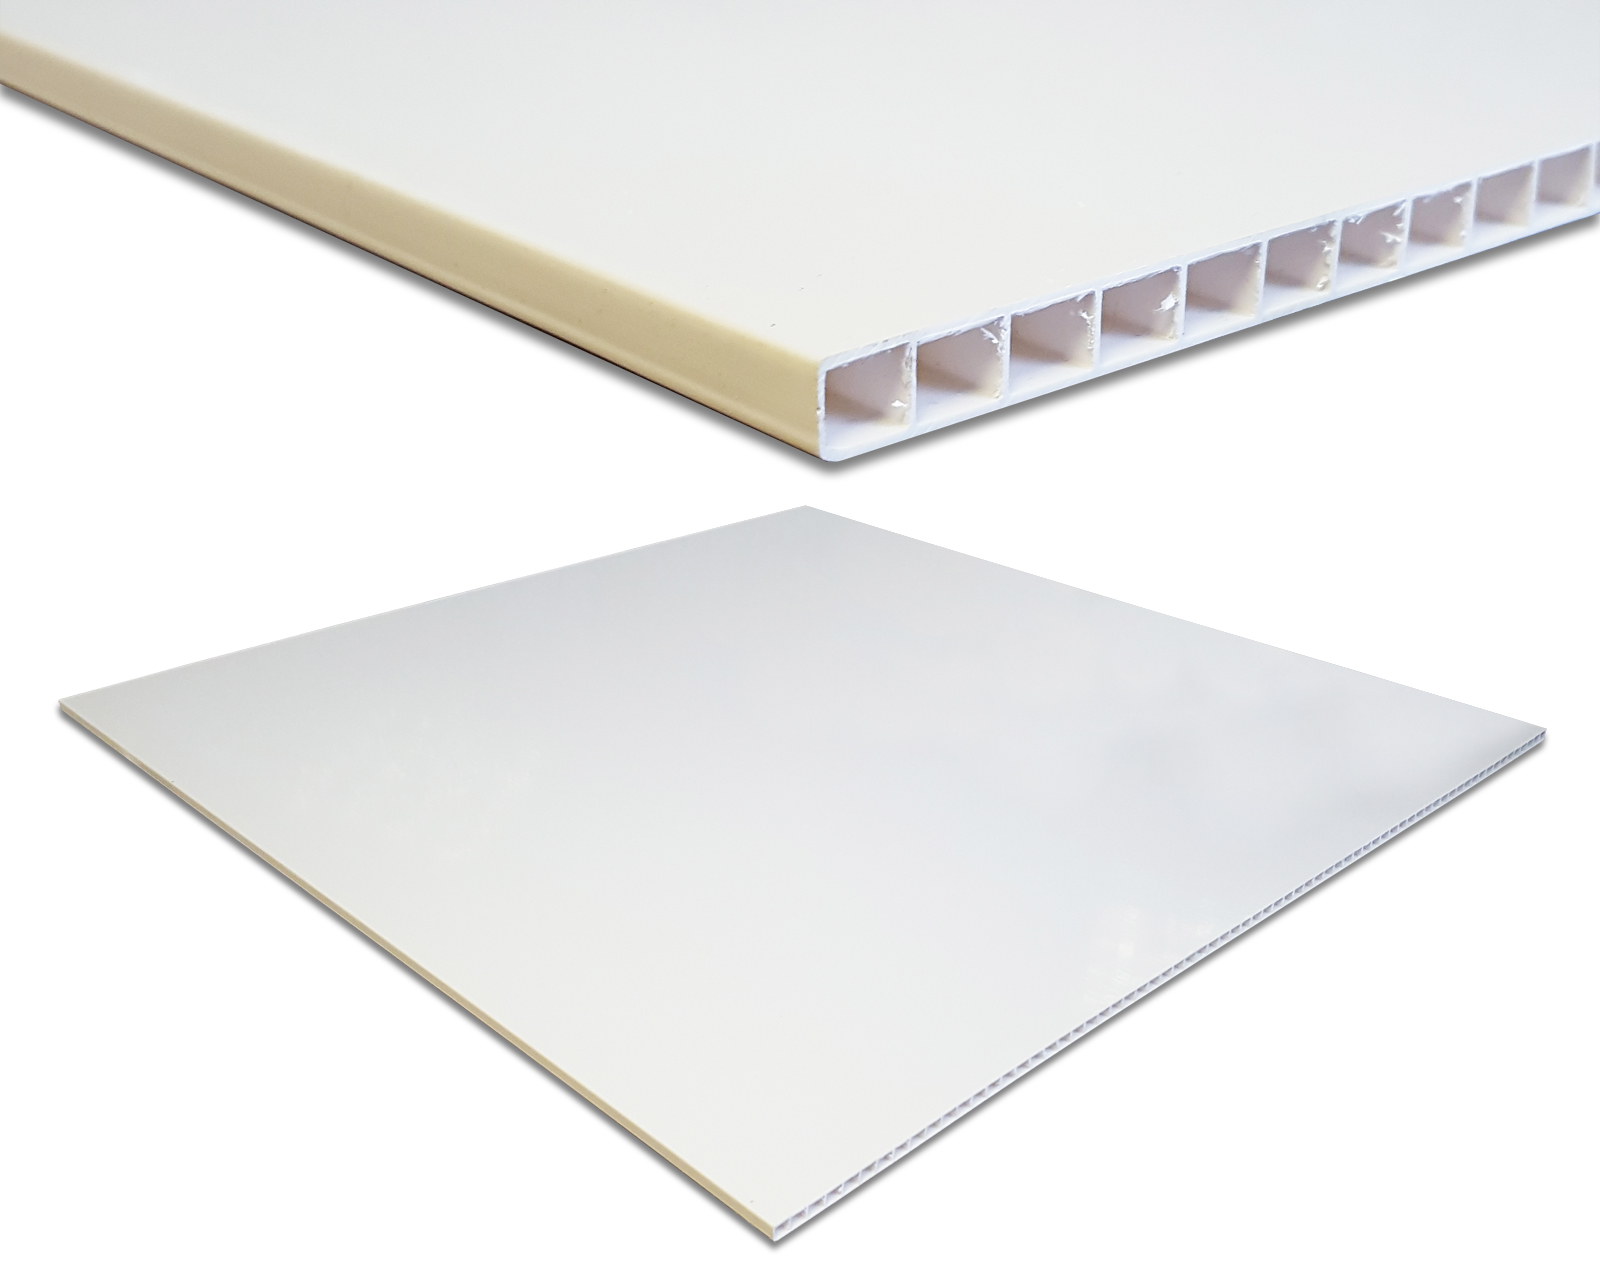 Composite Ceiling Tiles : Titan easycare pvc ceiling tiles pack of panels